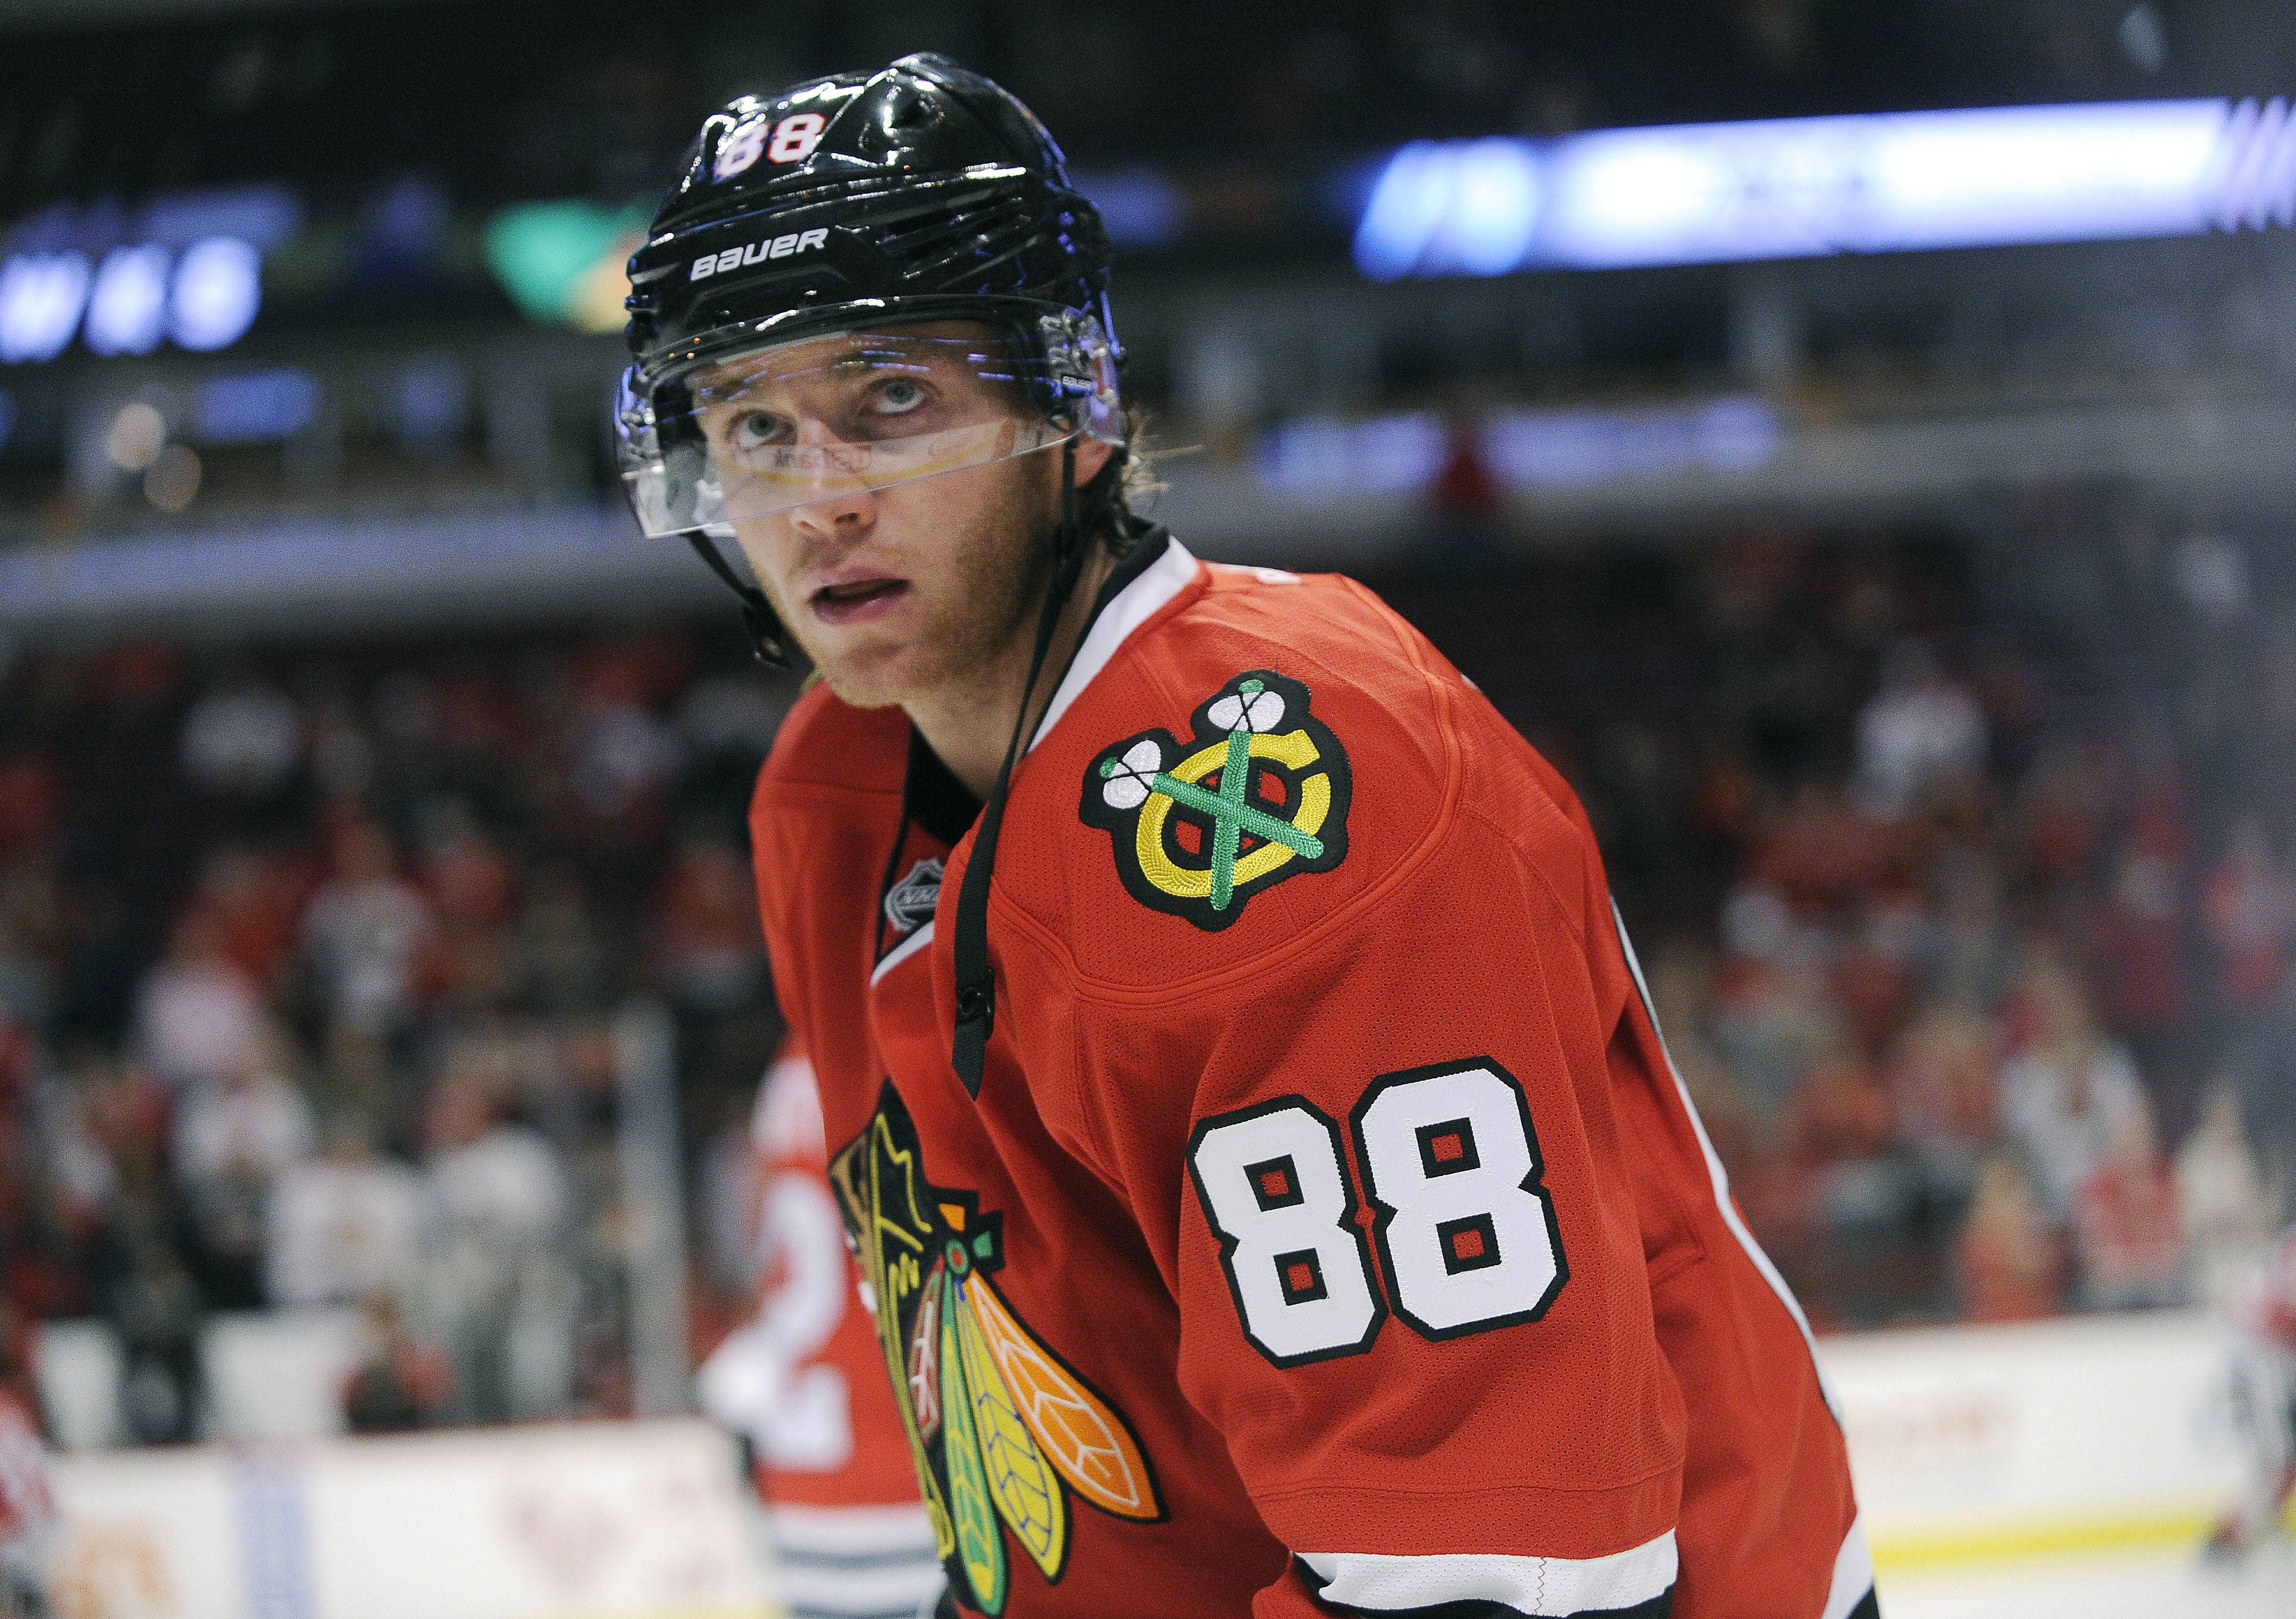 Chicago Blackhawks right winger Patrick Kane (88) has returned from the World Cup of Hockey tournament and is expected to practice with the team on Tuesday.